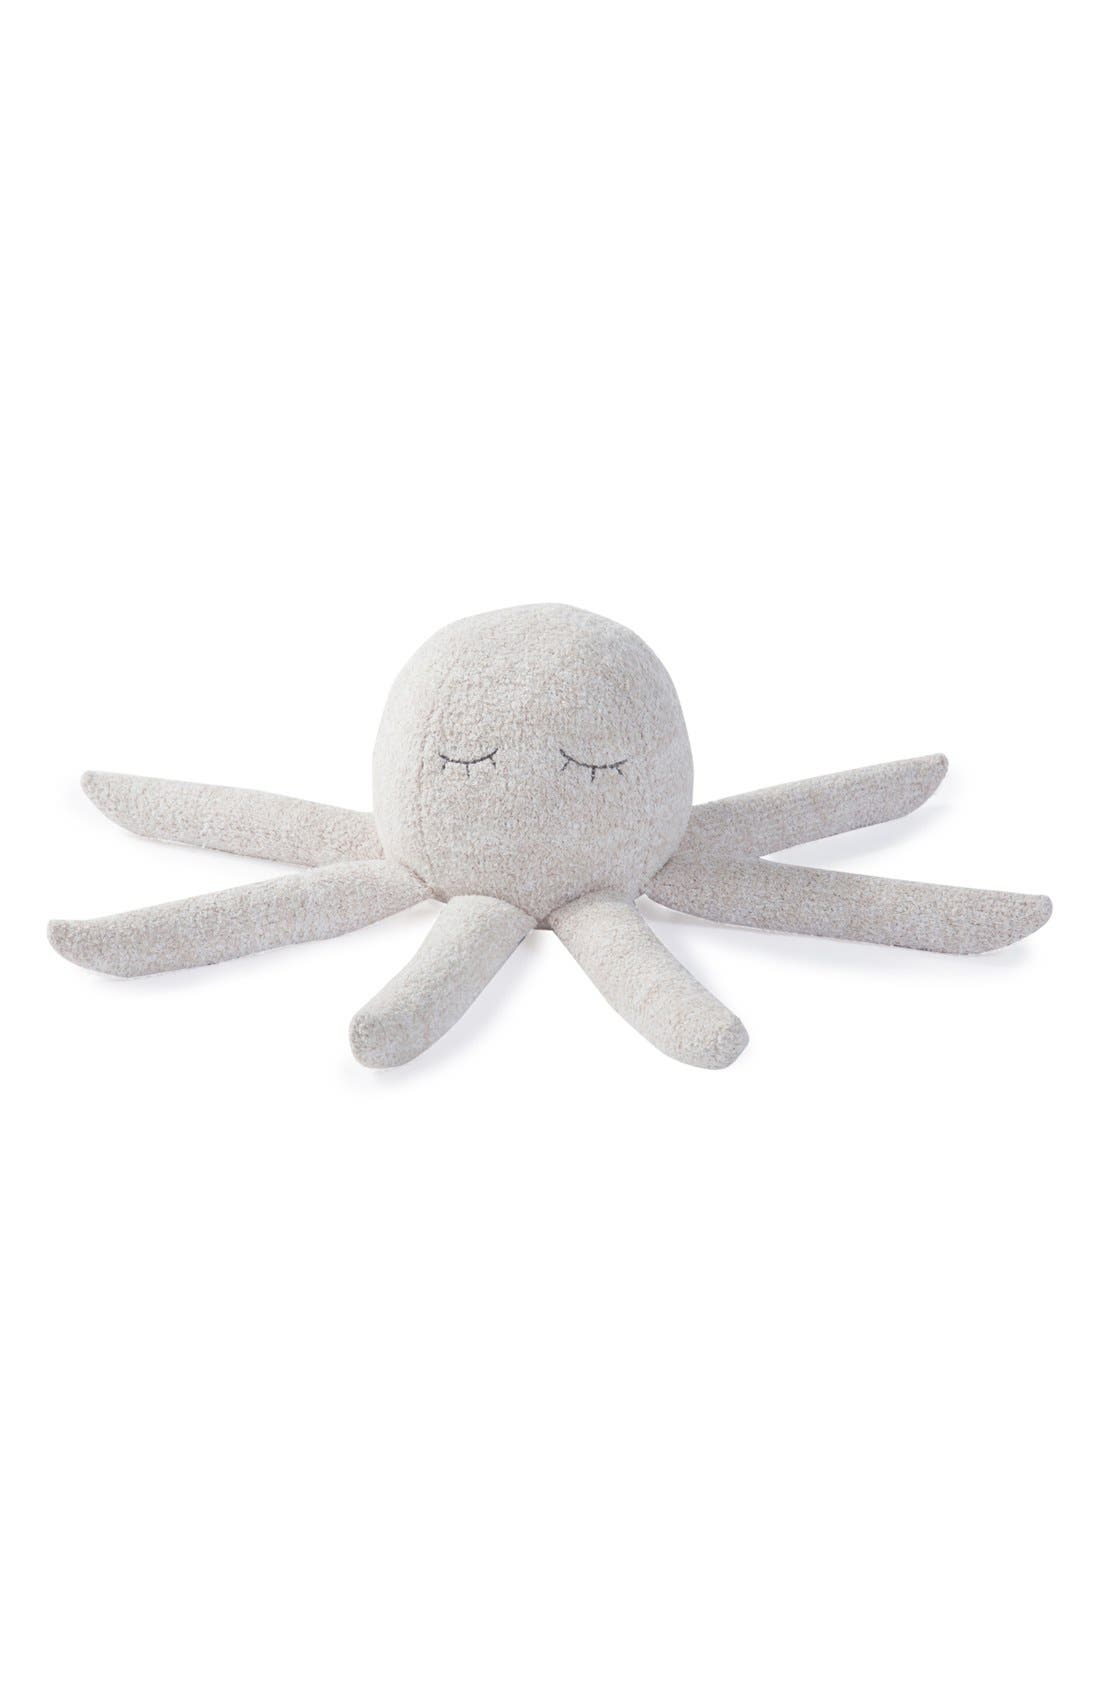 'CozyChic<sup>®</sup> Octopus Buddie' Plush Toy,                             Main thumbnail 1, color,                             Stone/White